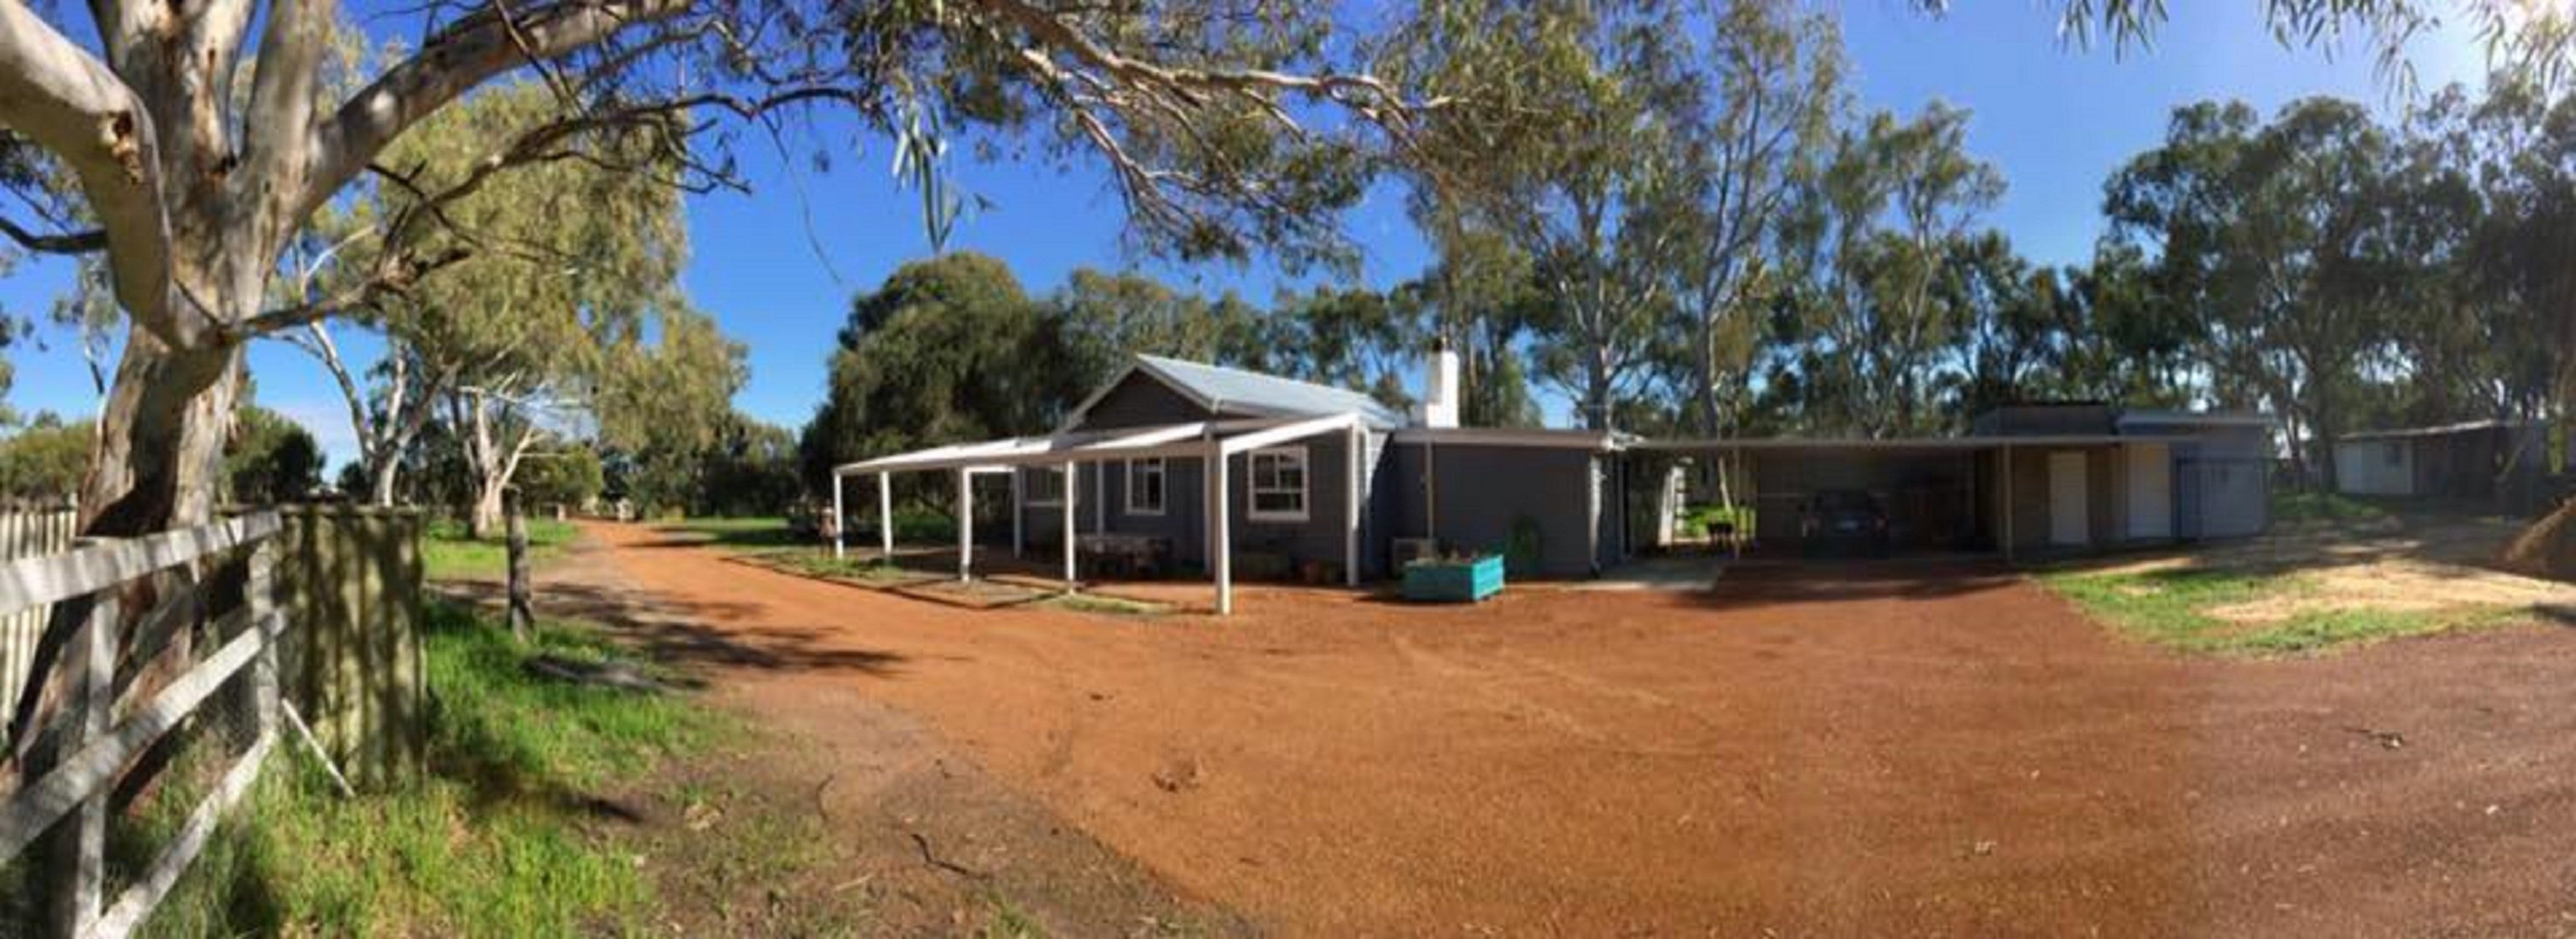 Aintree Cottage - Accommodation QLD